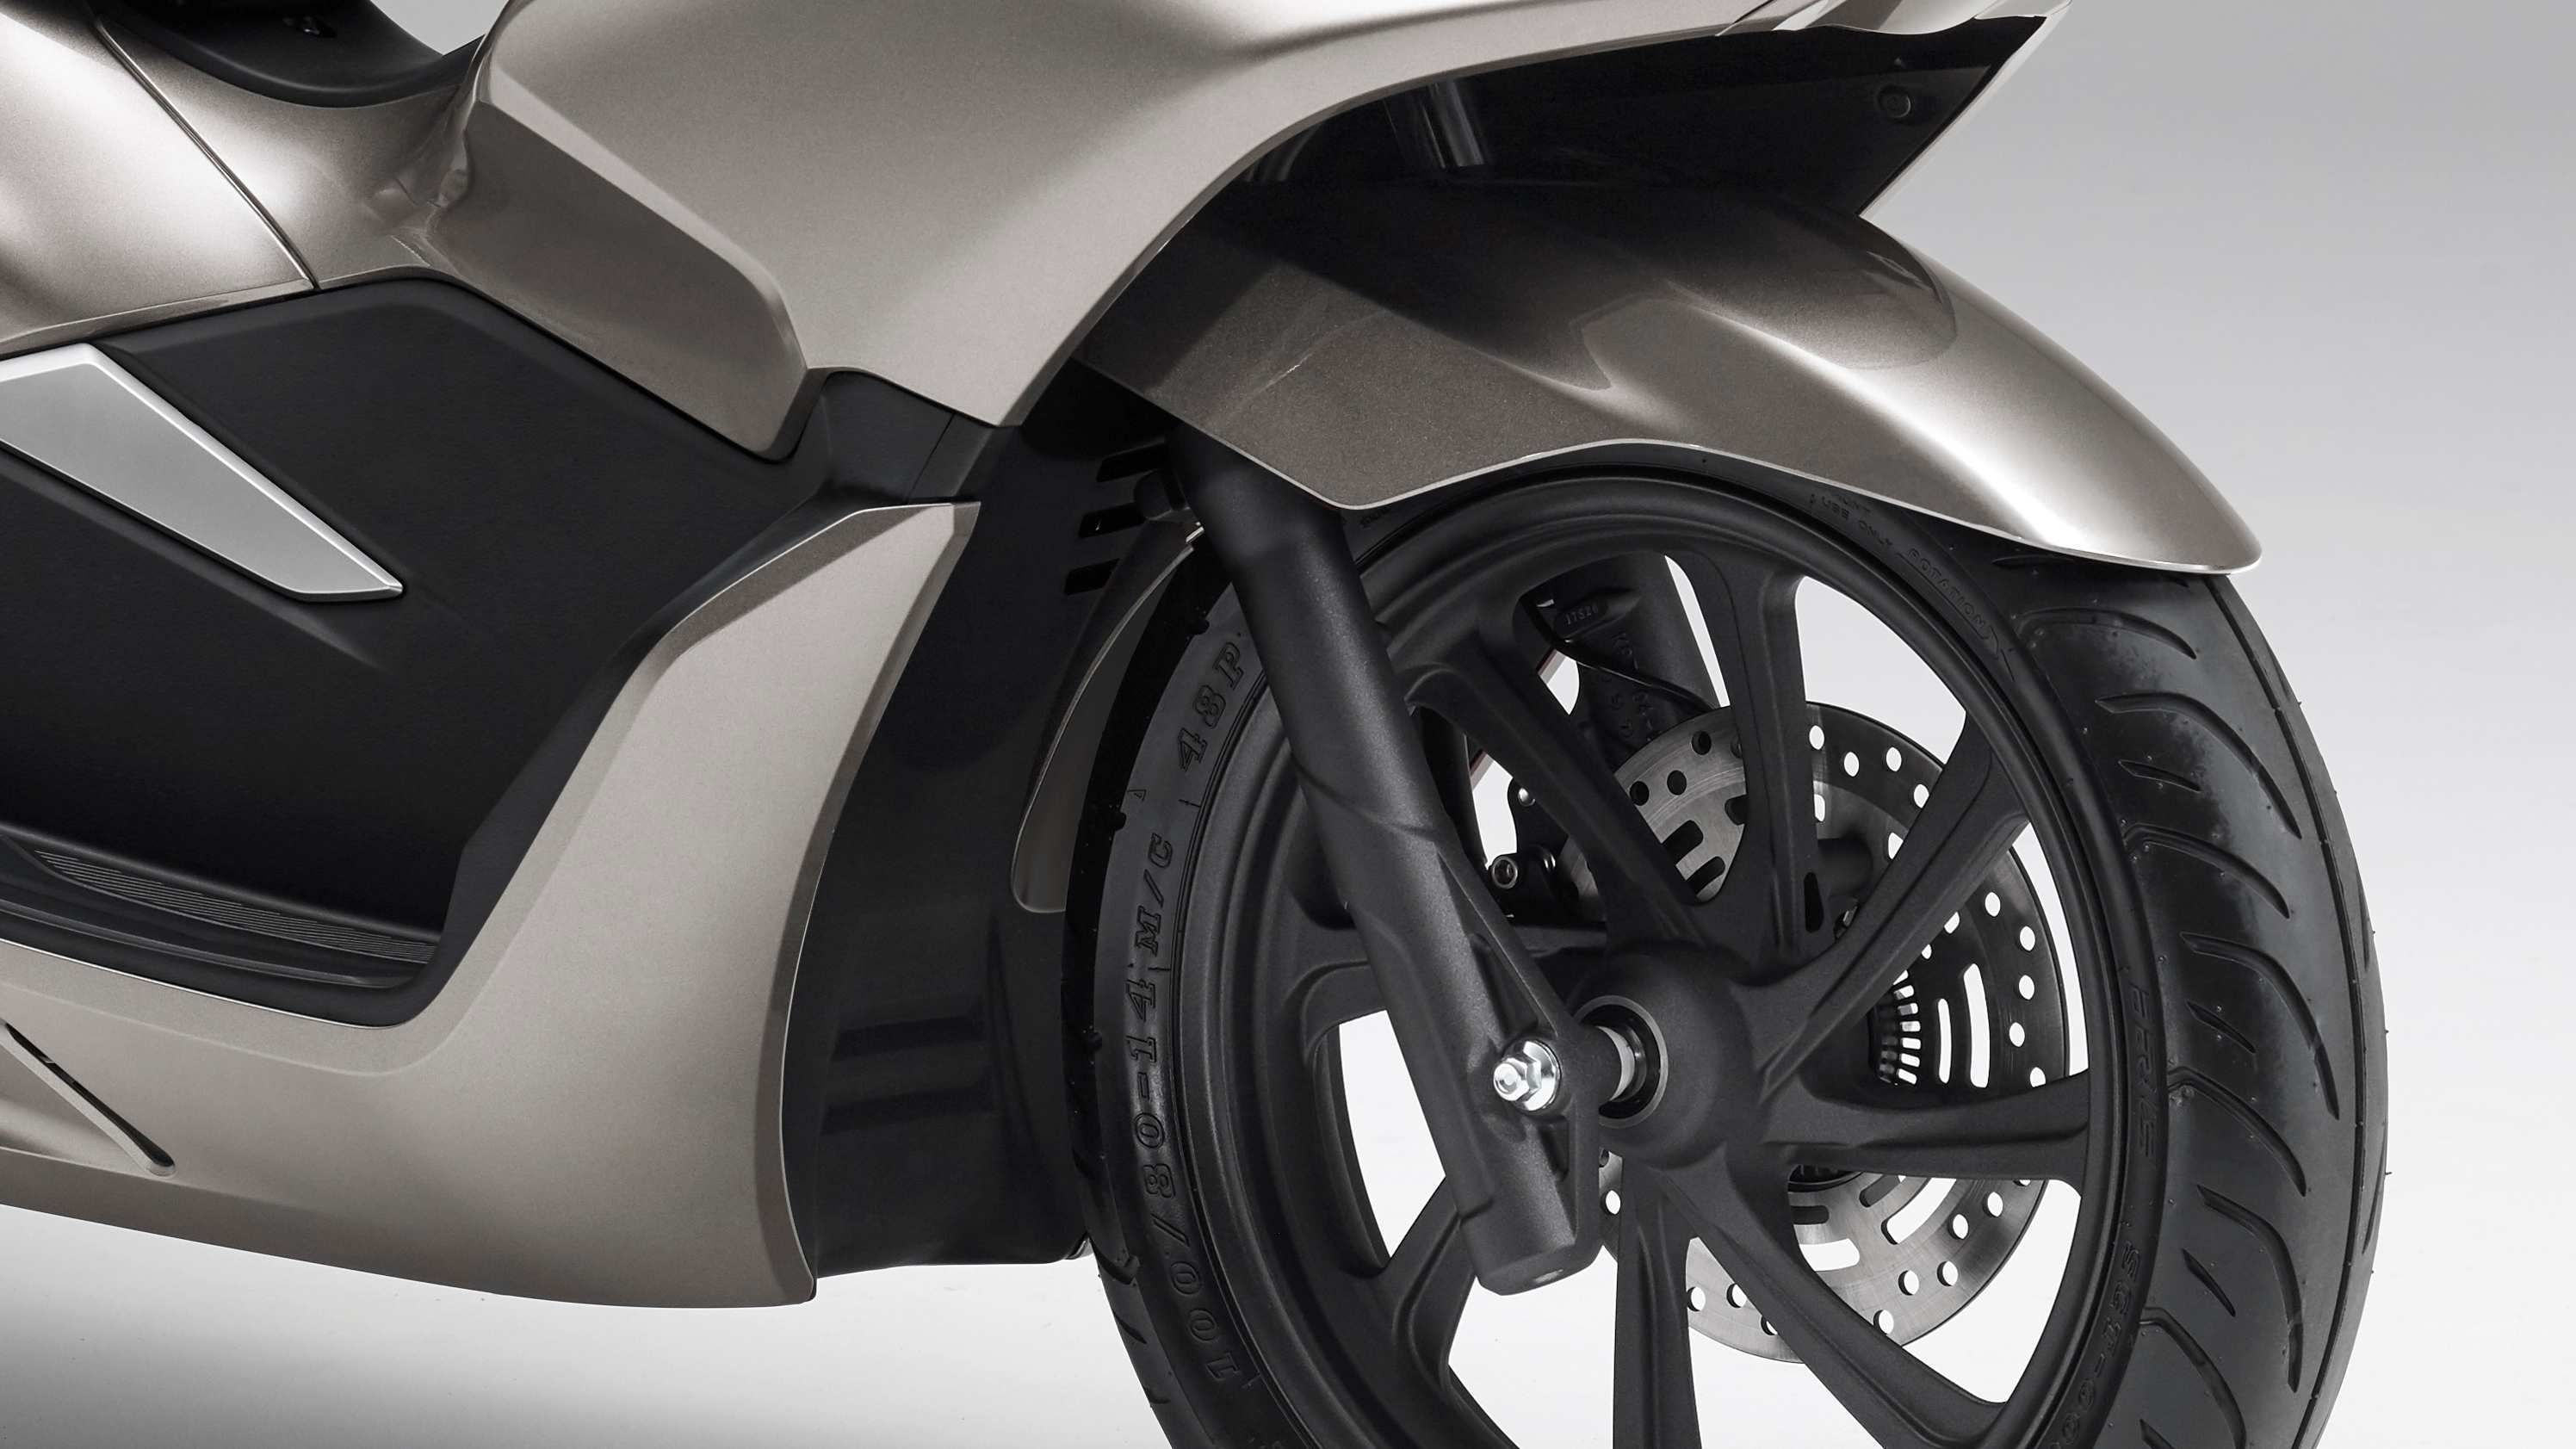 54 All New 2019 Honda Pcx150 Exterior